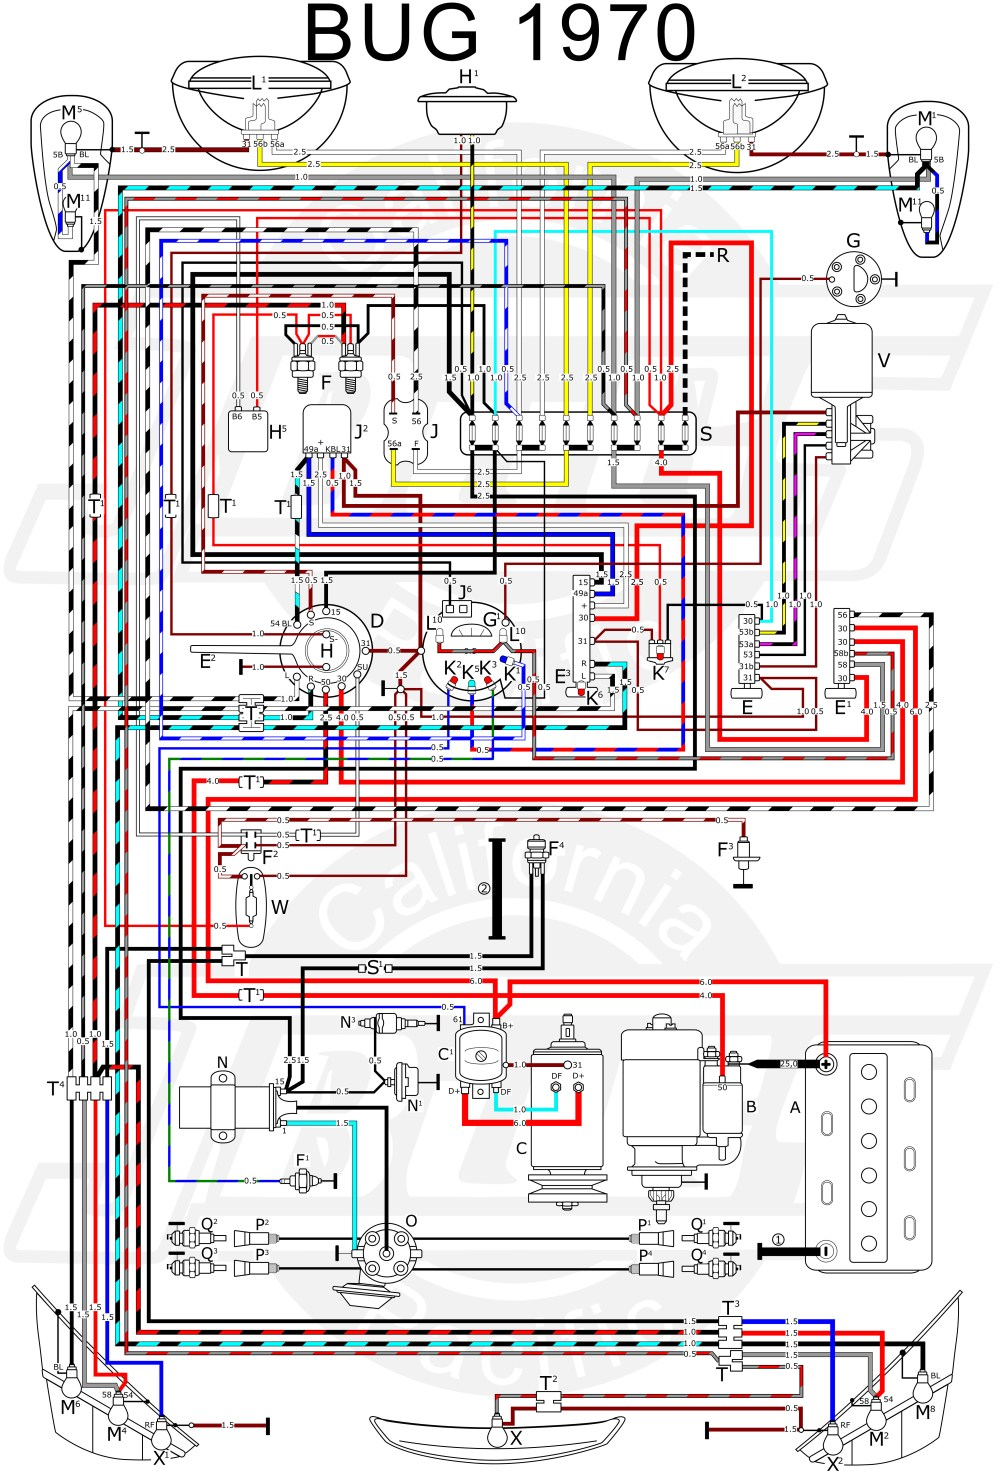 medium resolution of vw bug fuse diagram wiring diagram rows 2012 vw beetle fuse diagram 1971 vw beetle fuse